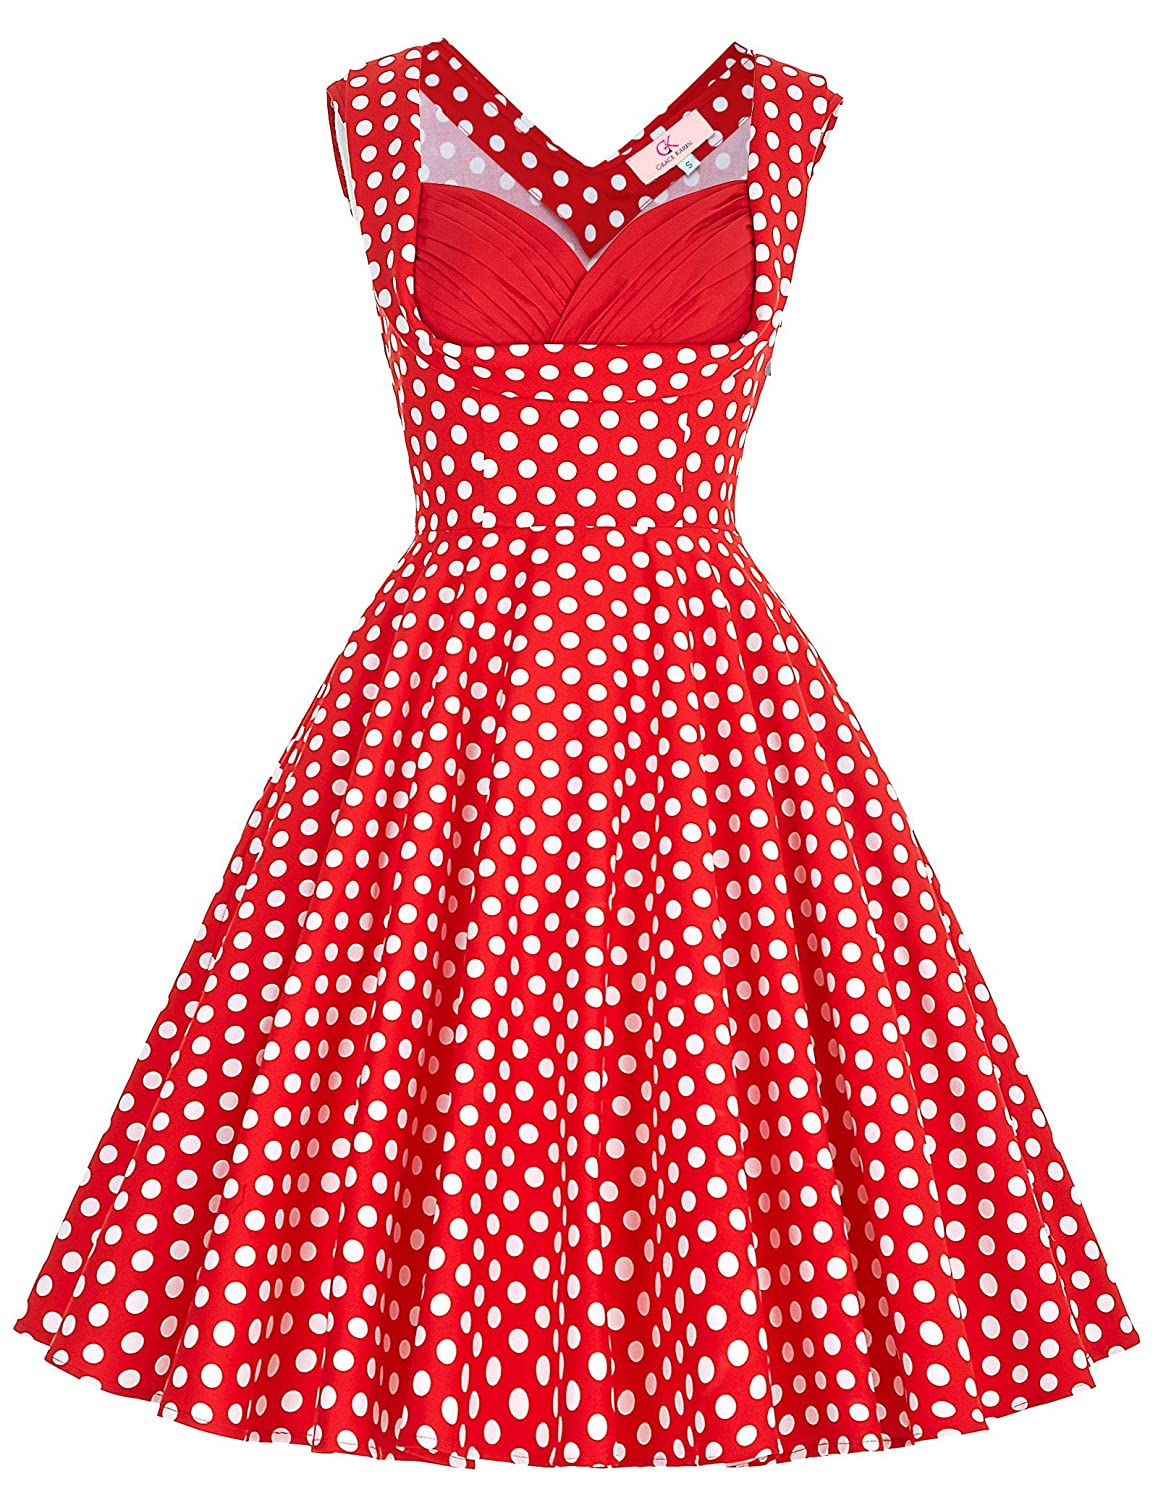 1950s Polka Dot Dresses Grace Karin Womens Vintage 1950s Floral Cut Out Casual Party Dresses $15.99 AT vintagedancer.com